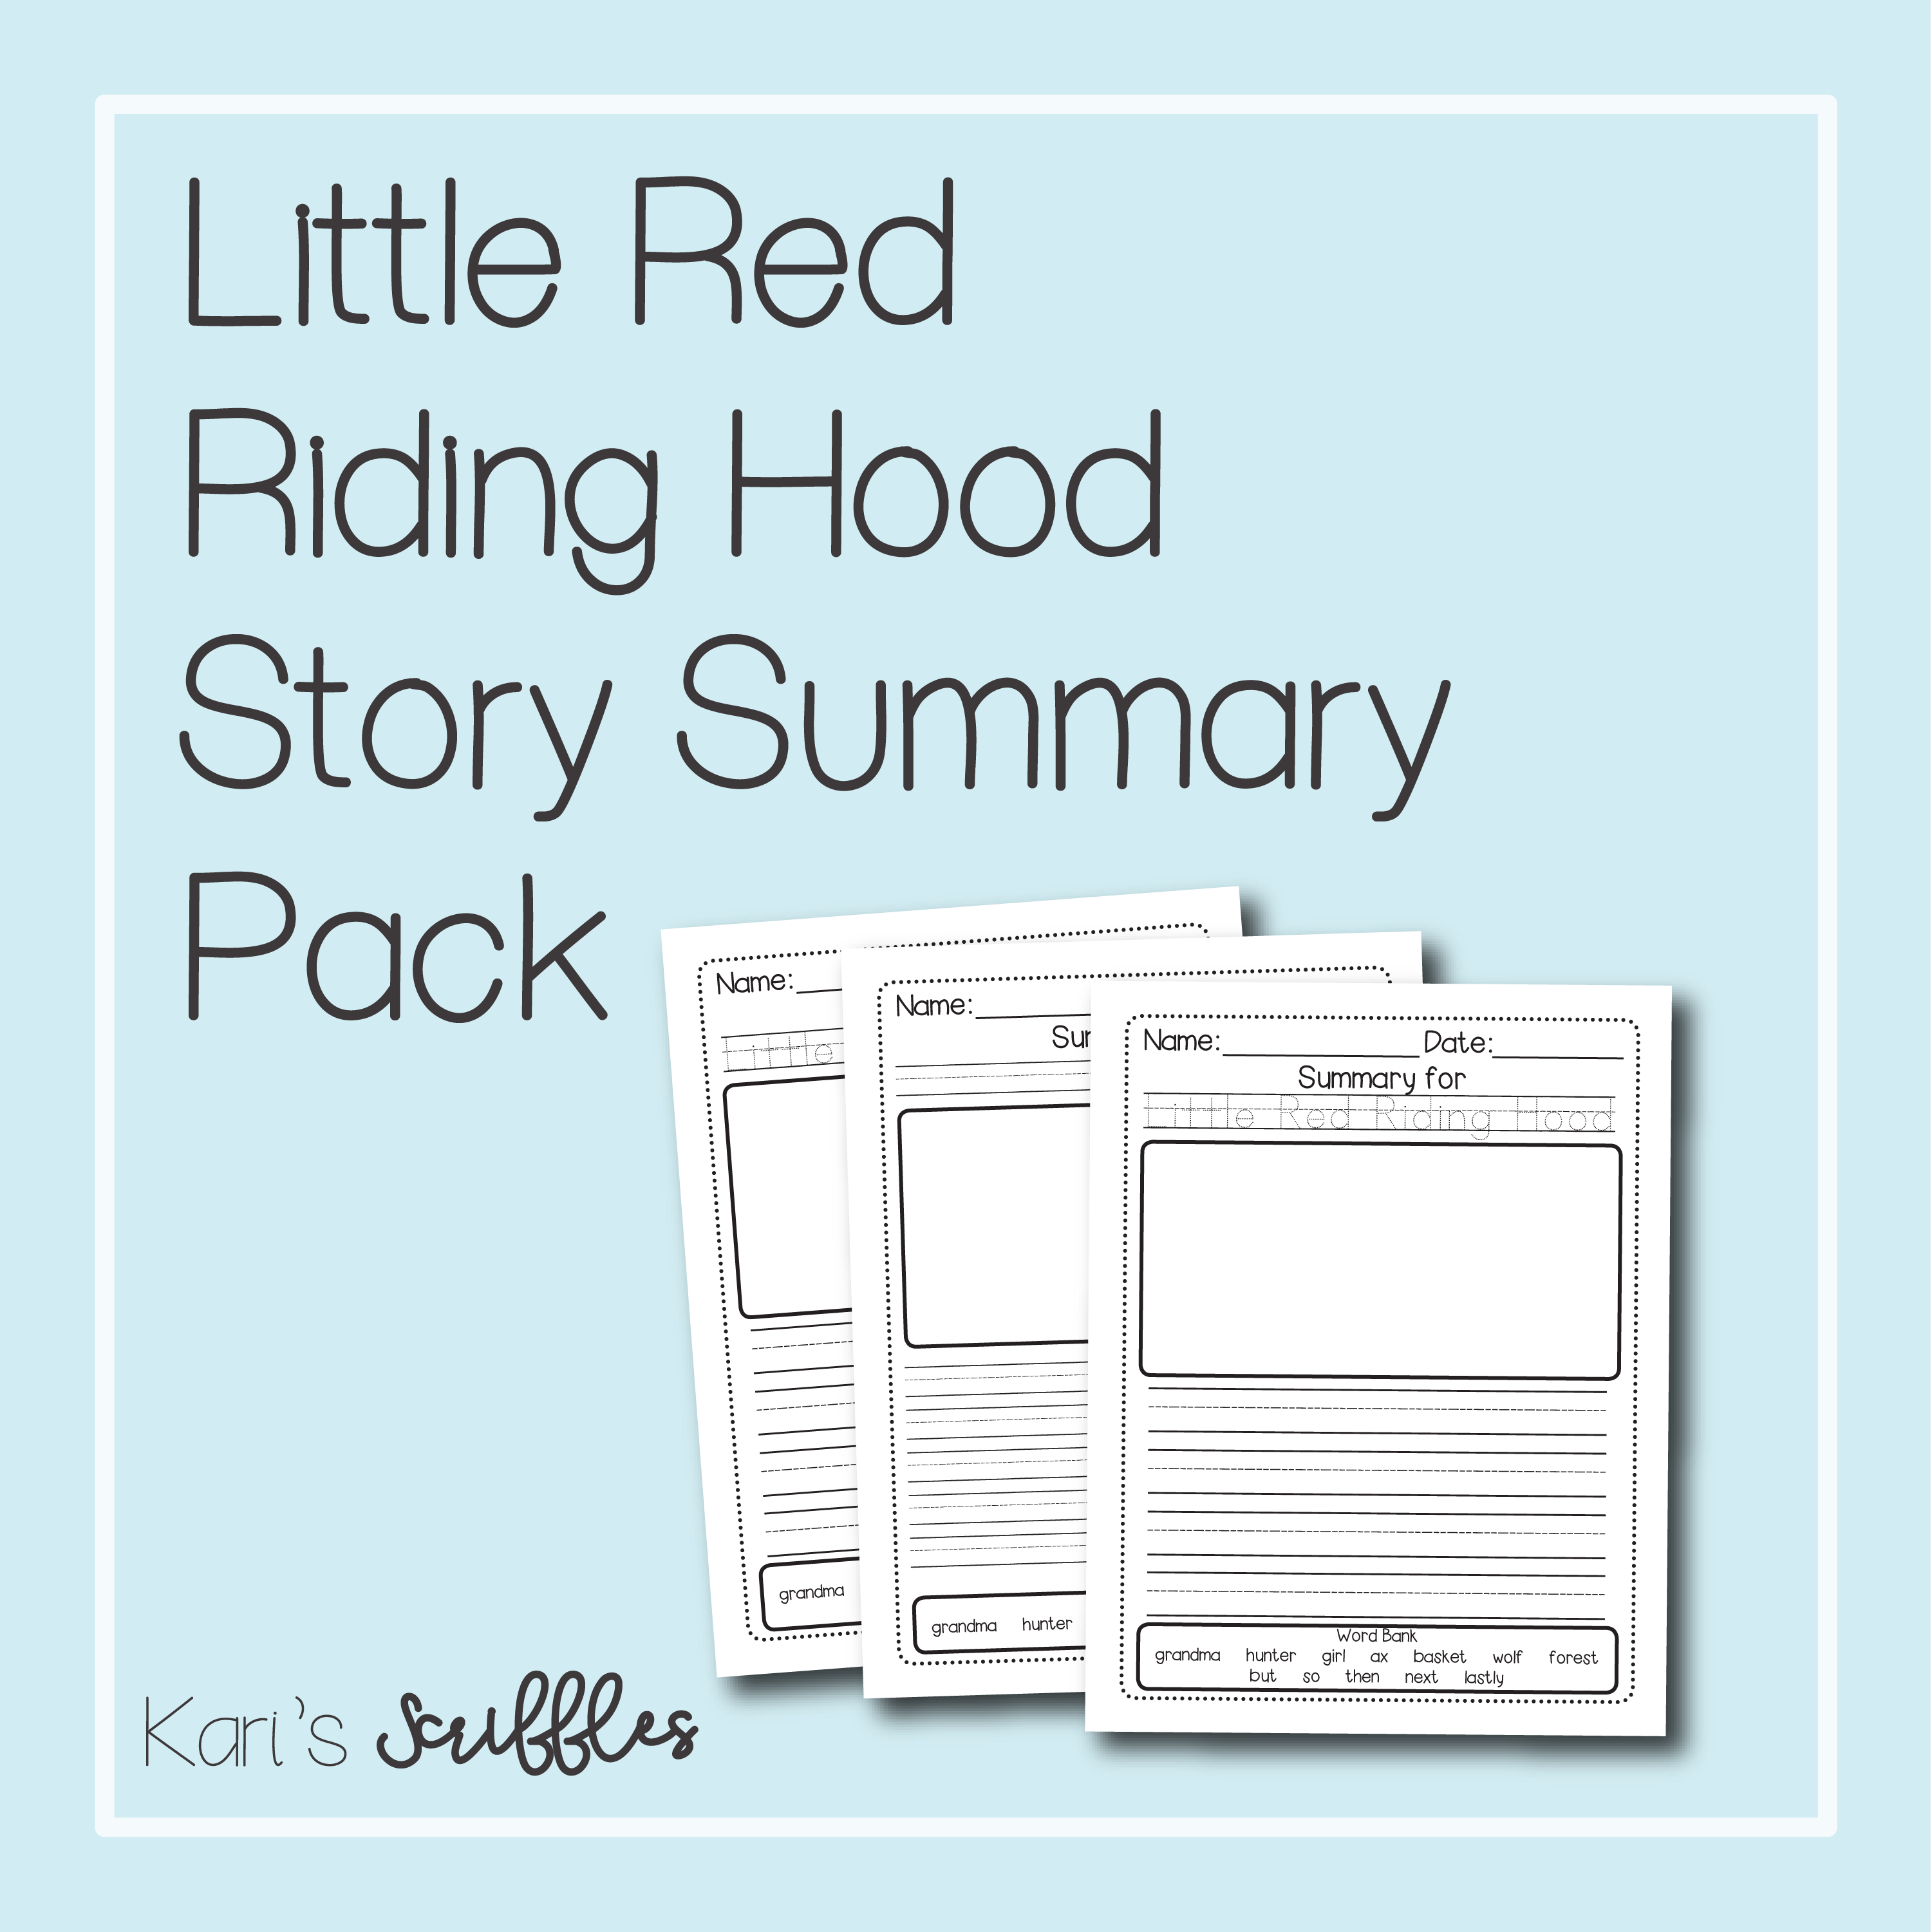 Little Red Riding Hood Summary Pack